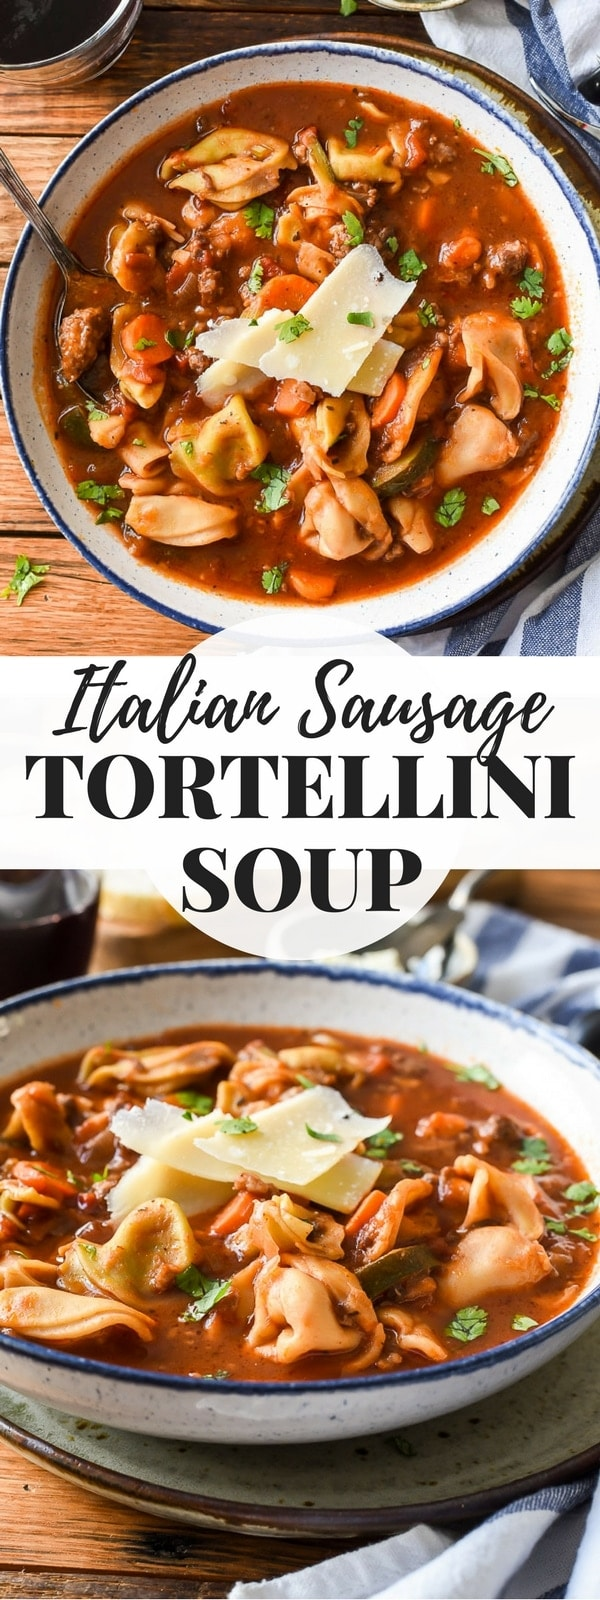 Soup with Italian Sausage, cheese tortellini and vegetables sprinkled with Parmesan cheese